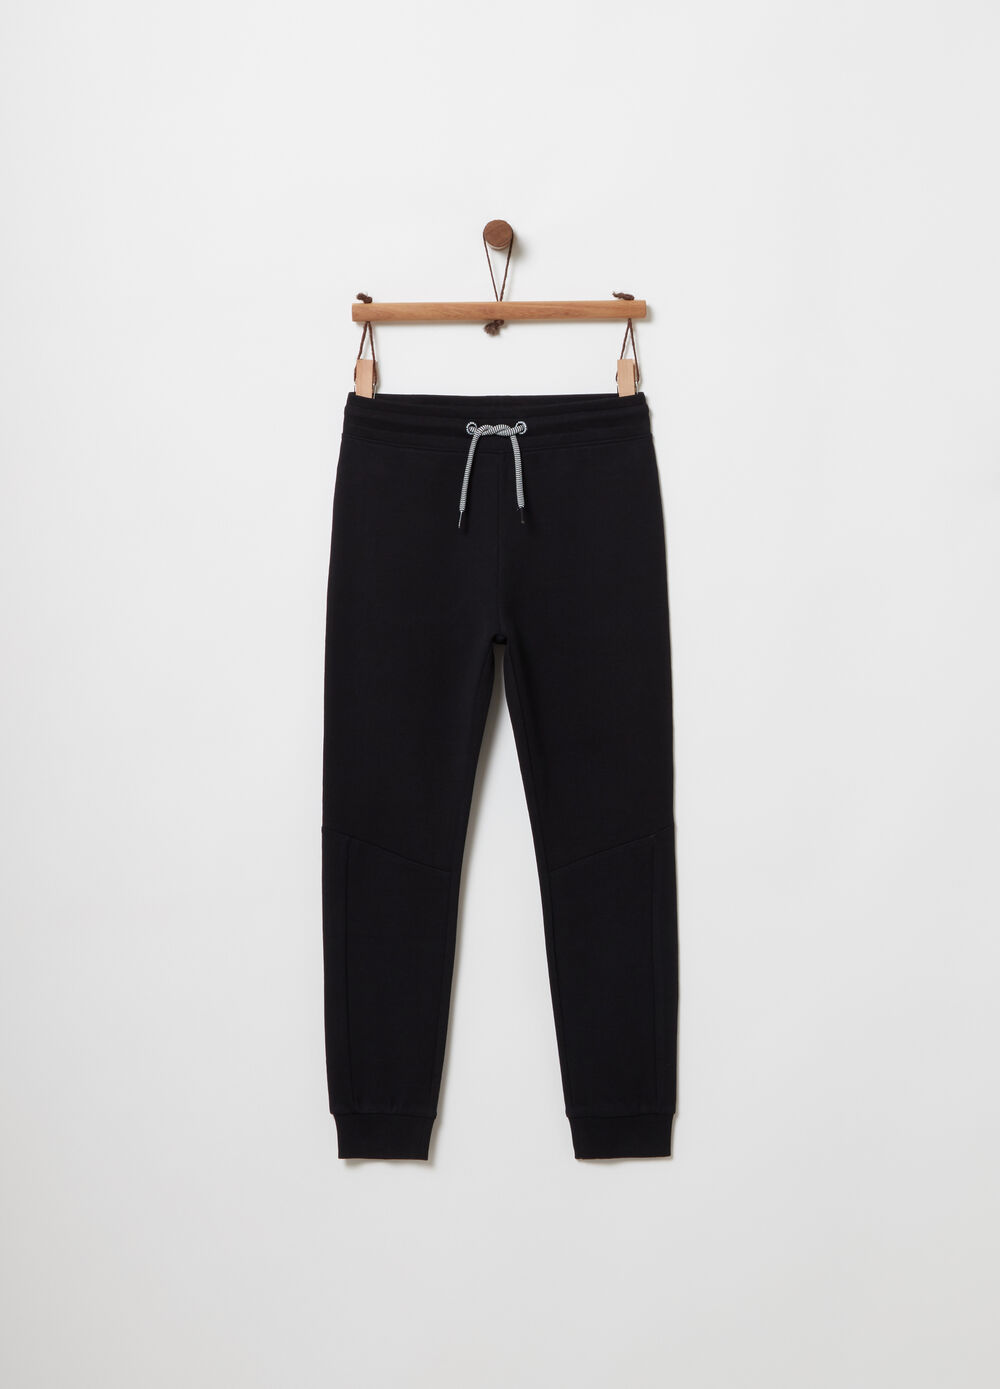 Trousers with pocket and jacquard label